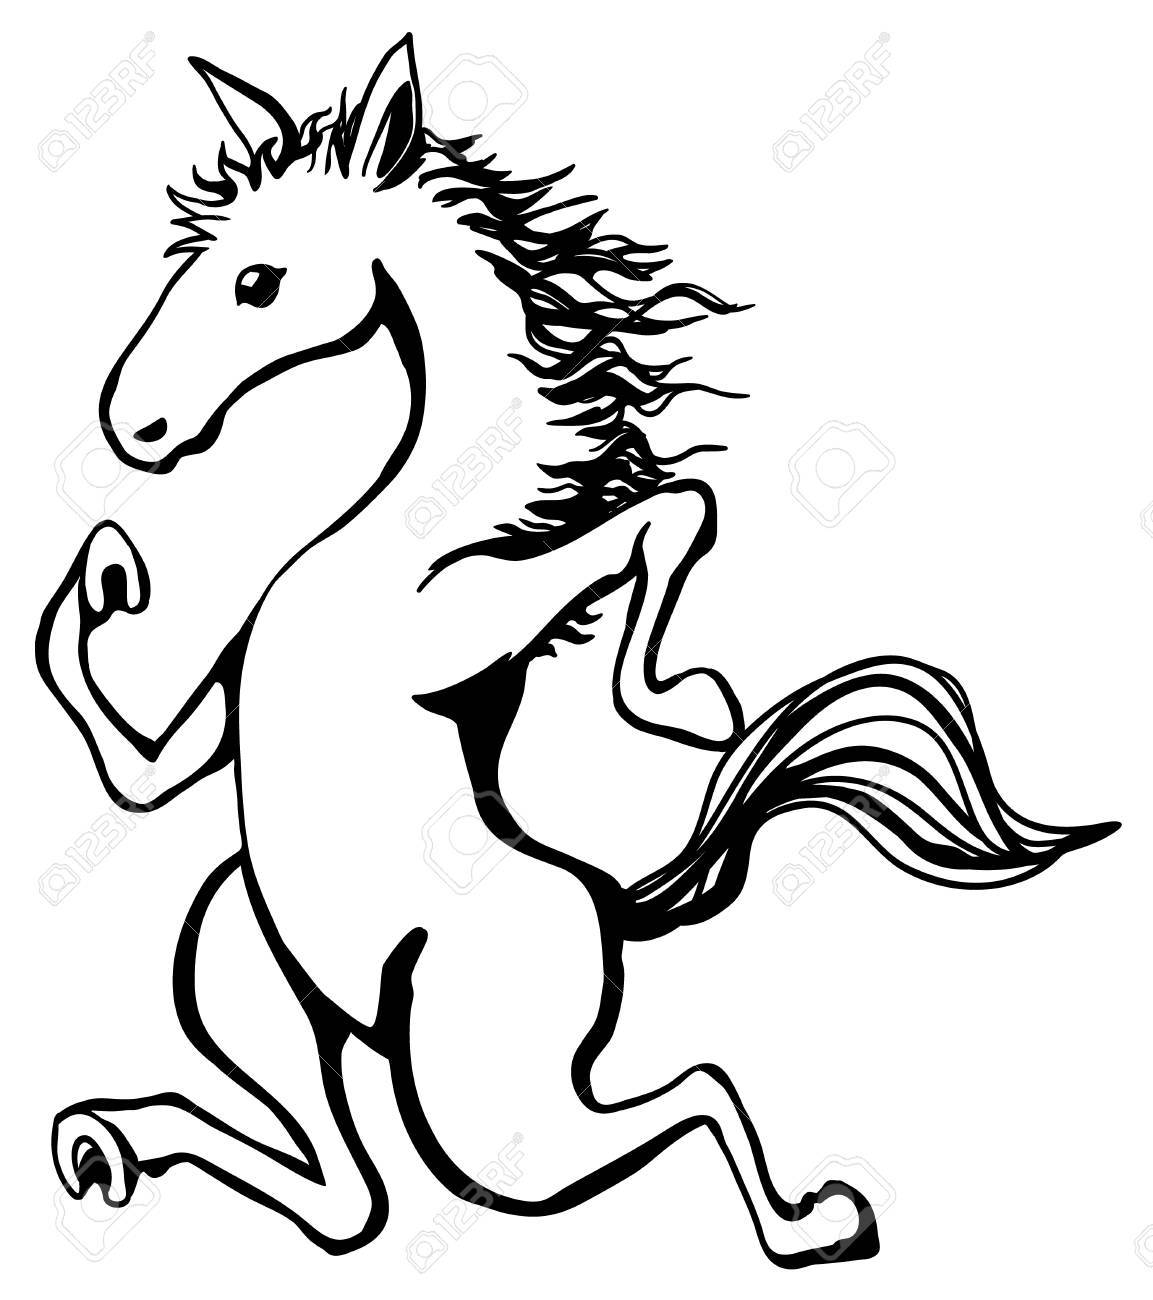 Horse Pictures Drawing Free Download Best Horse Pictures Drawing